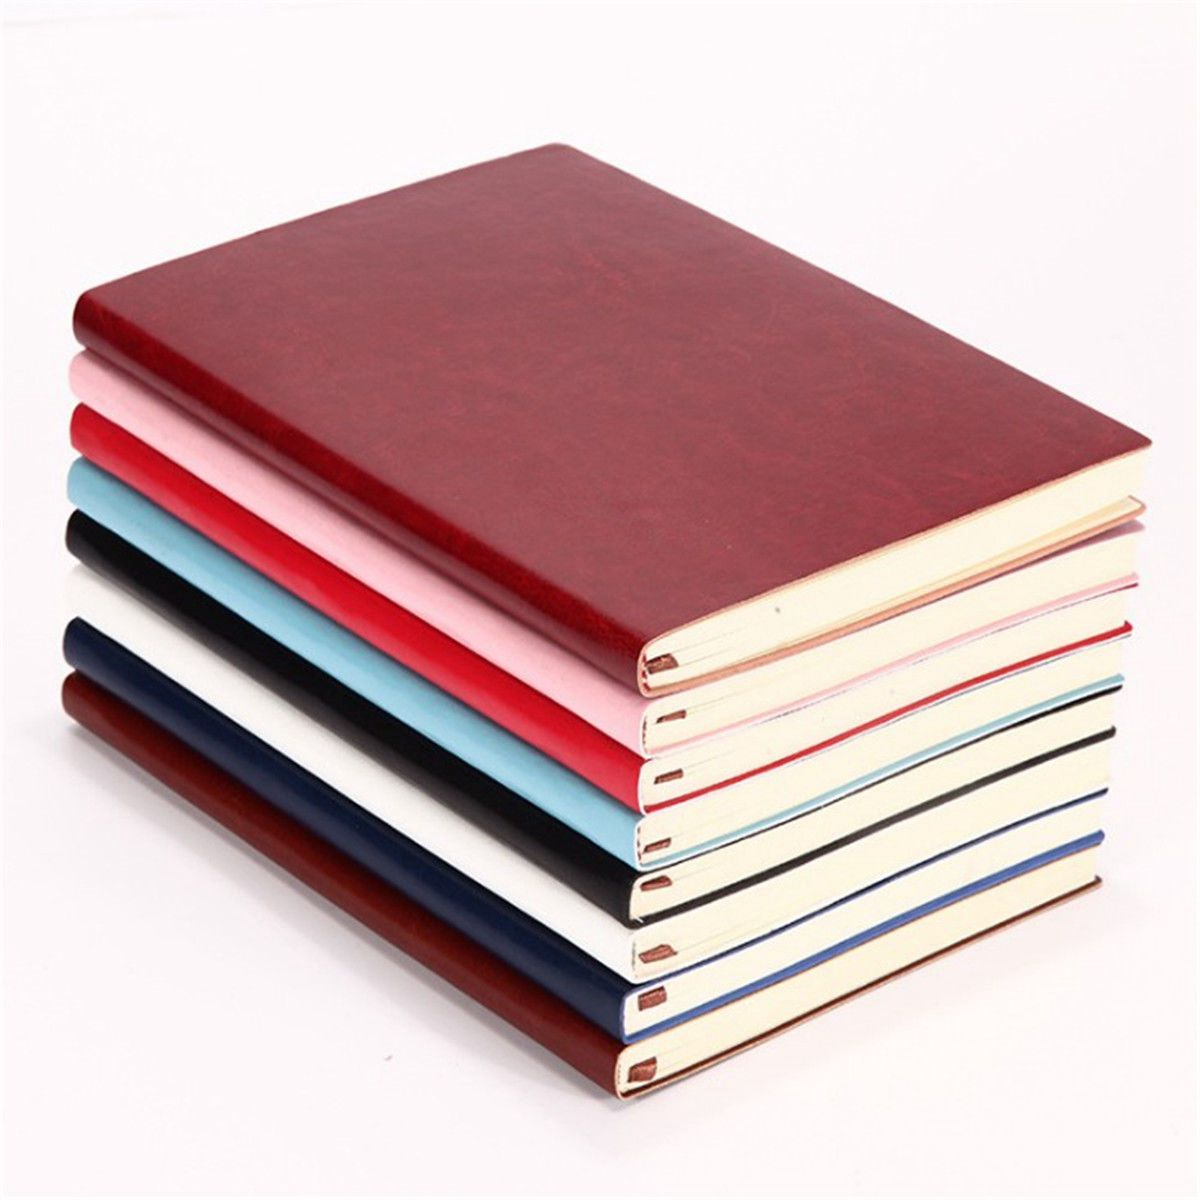 6 Color Random Soft Cover PU Leather Notebook Writing Journal 100 Page Lined Diary Book 10 pcs lot 7 newly foe colorful elastic headband for infant toddlers hair band baby children fashion hair accessories